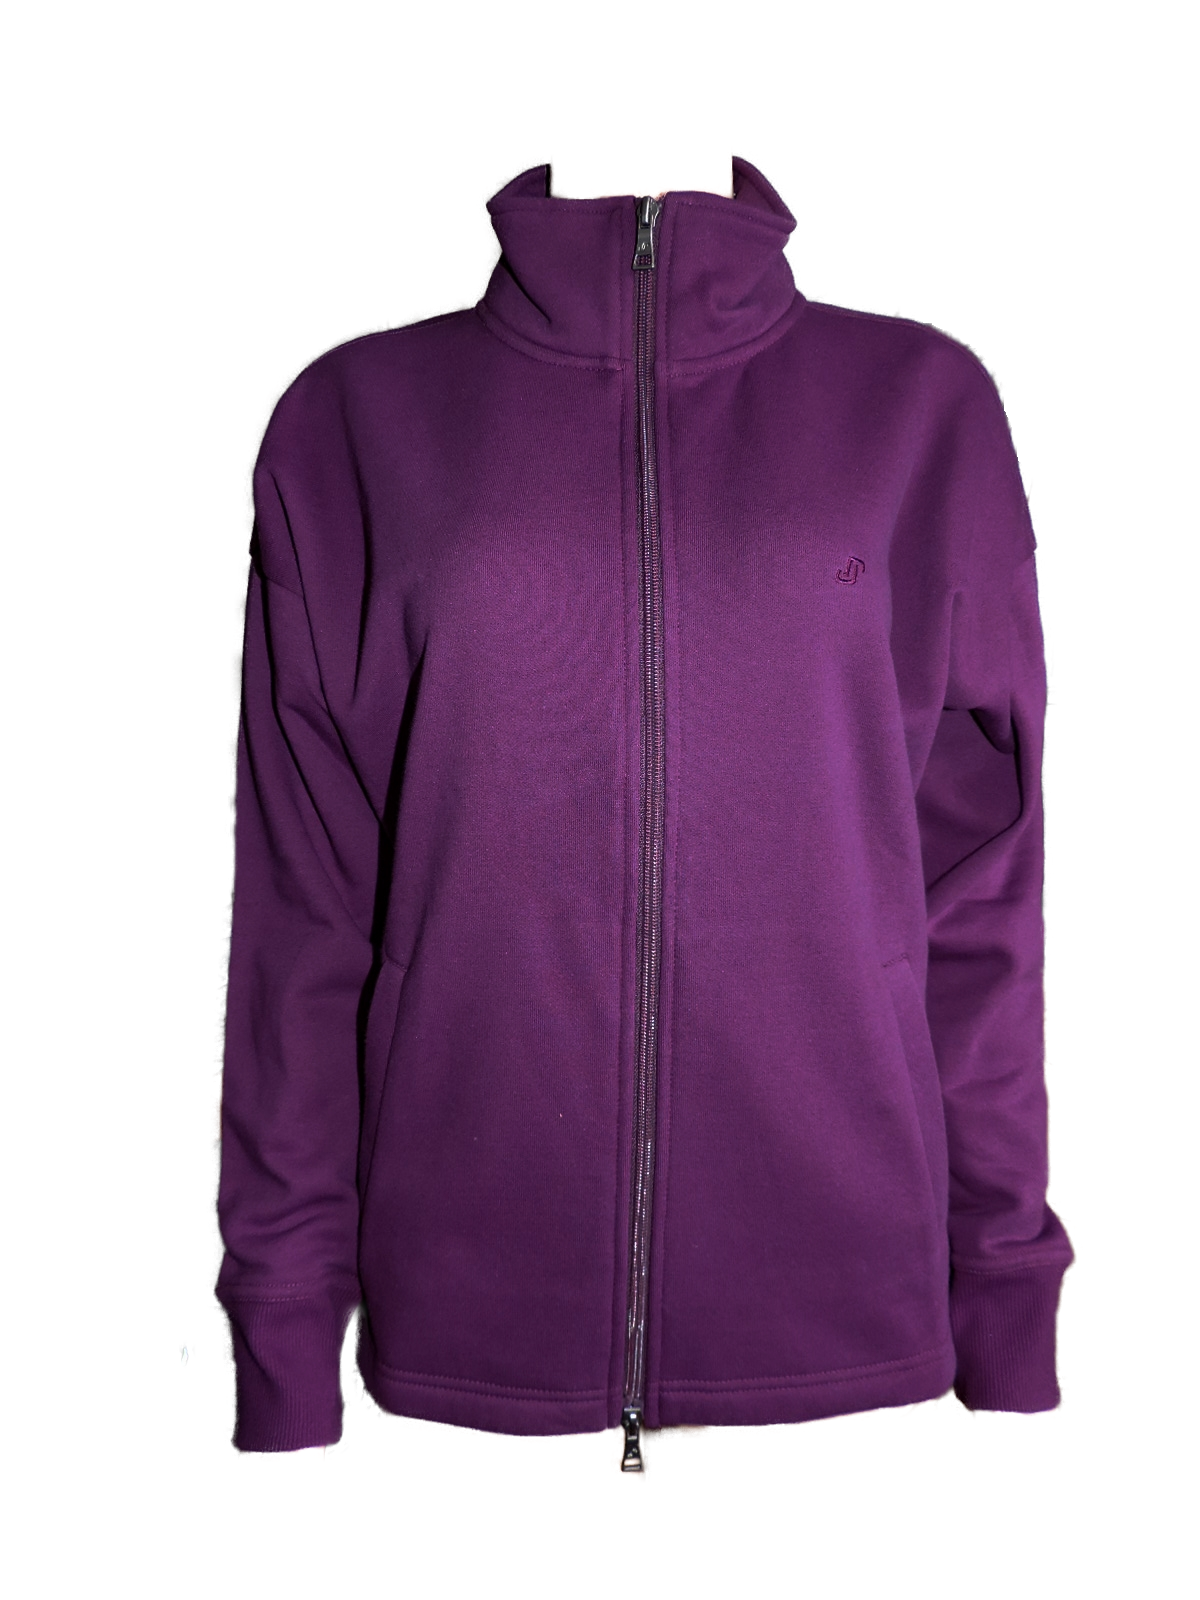 Joy Damen Sweatjacke Sportjacke Freizeitjacke Kerstin Grape Sun Gr. 38